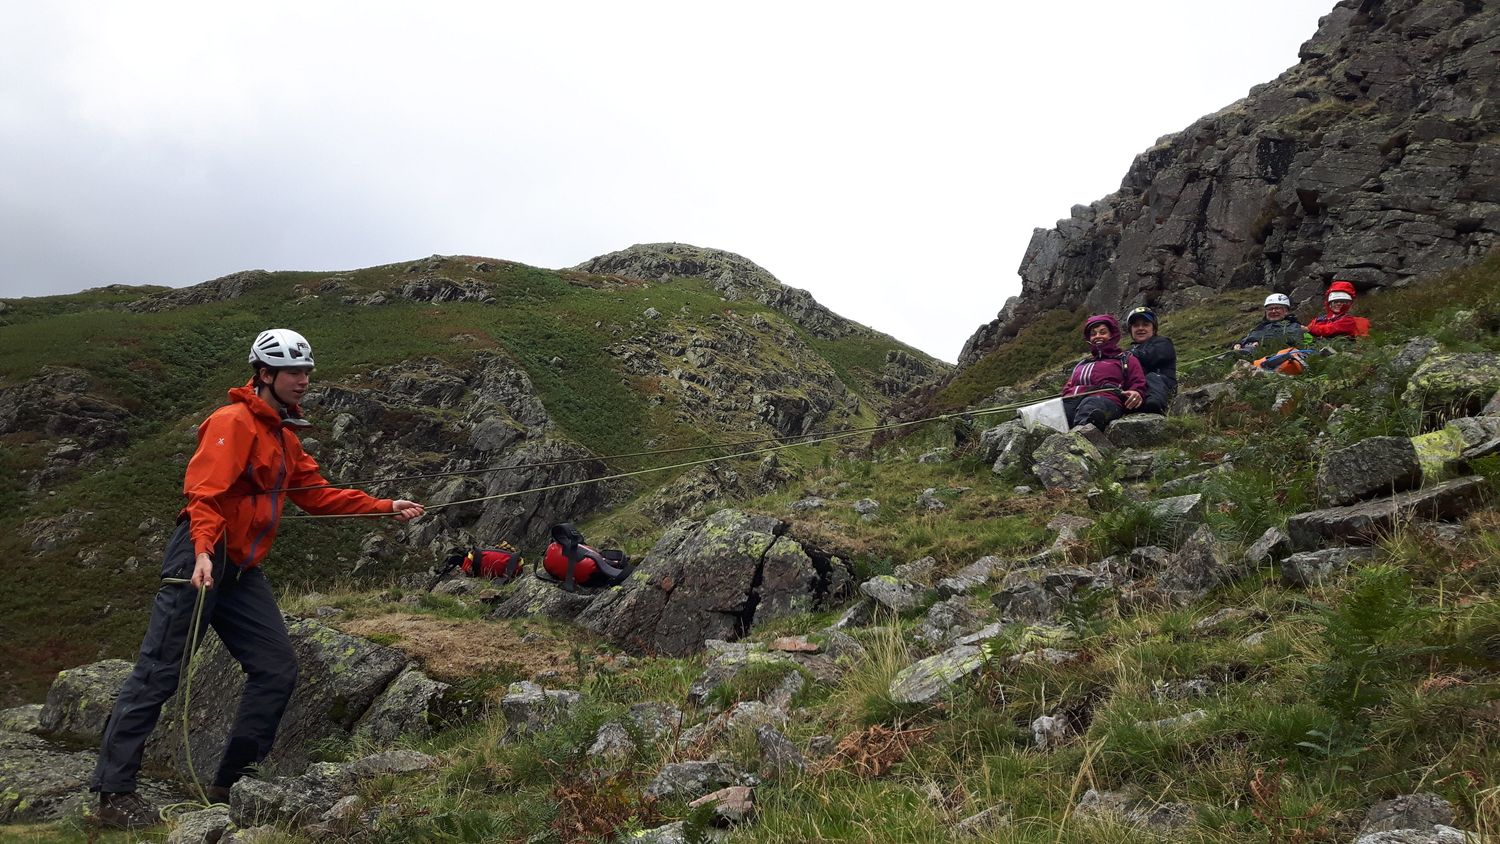 Mountain leader training candidates using a safety rope on steep ground